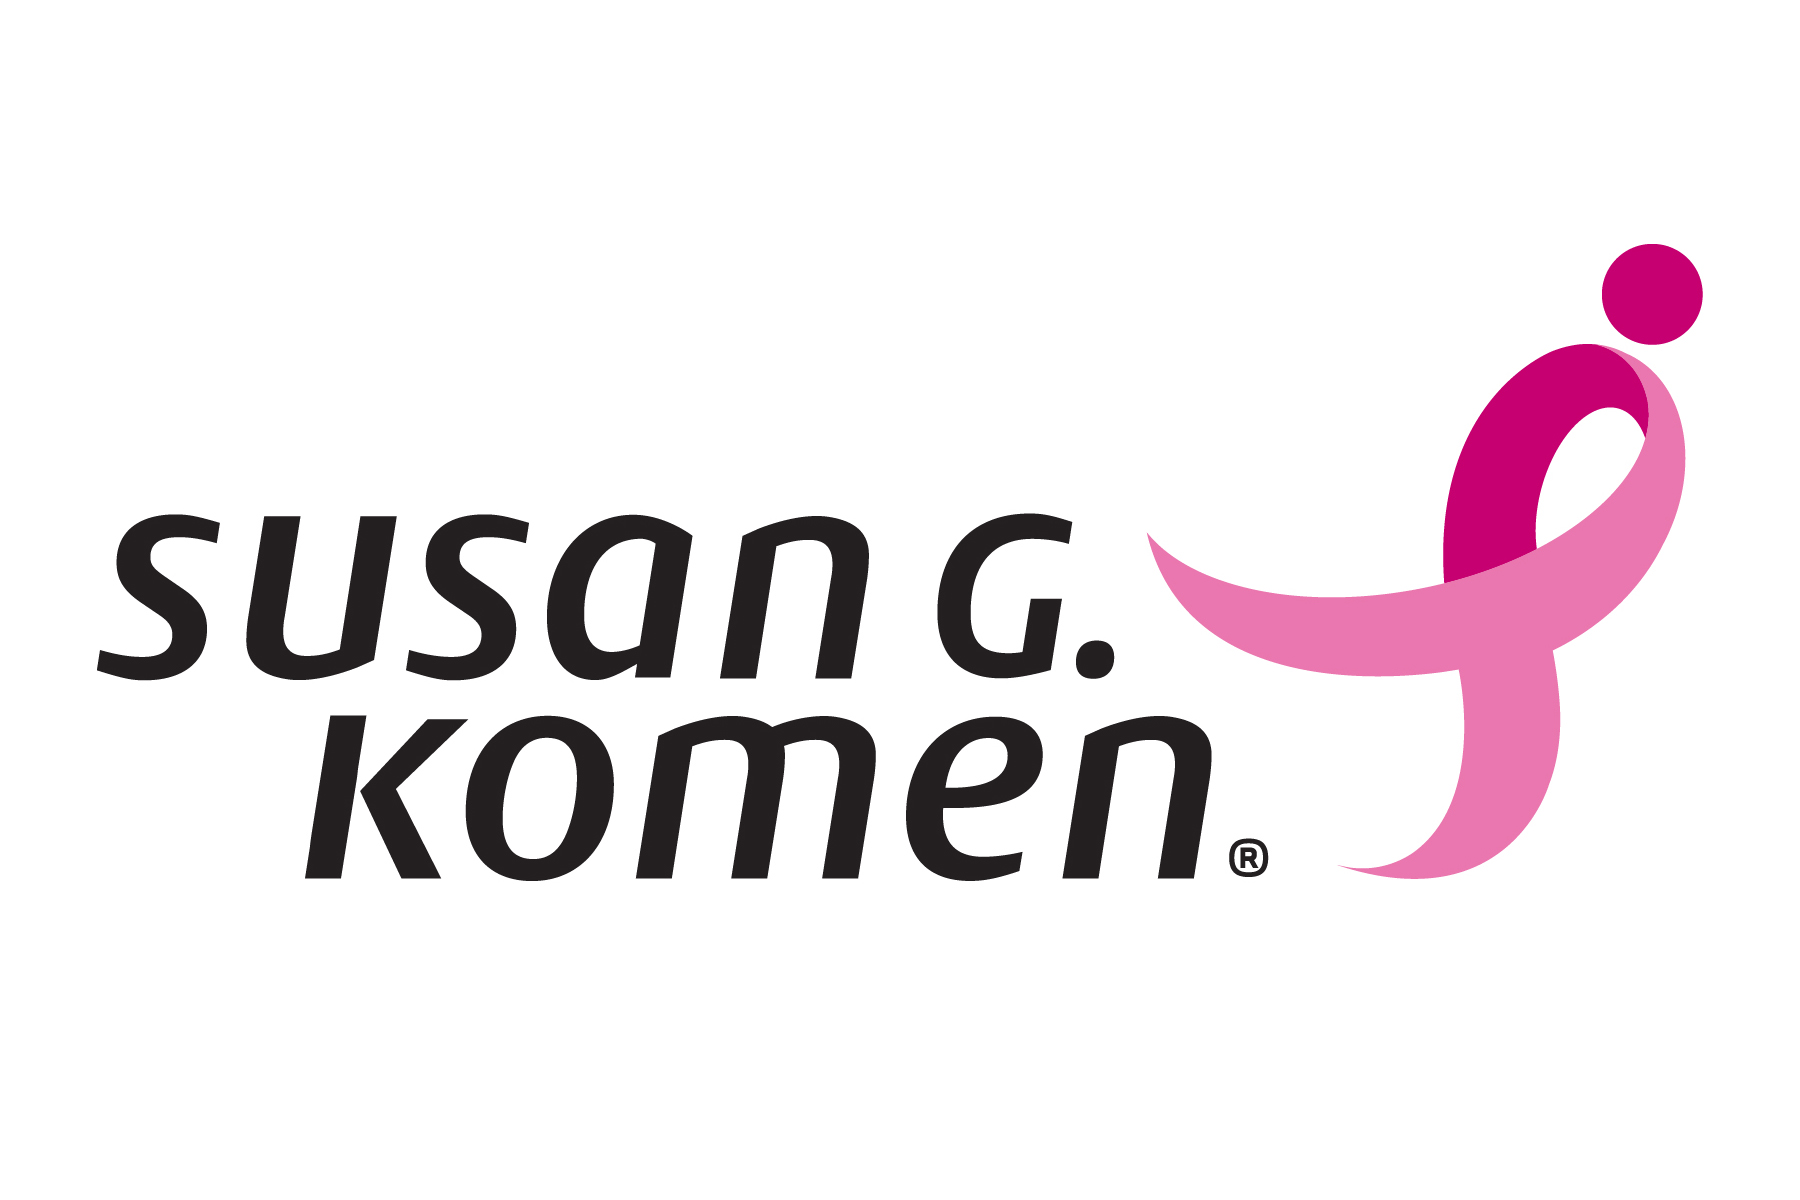 Non-profit organization working towards ending breast cancer by funding groundbreaking research, community health & advocacy programs globally.